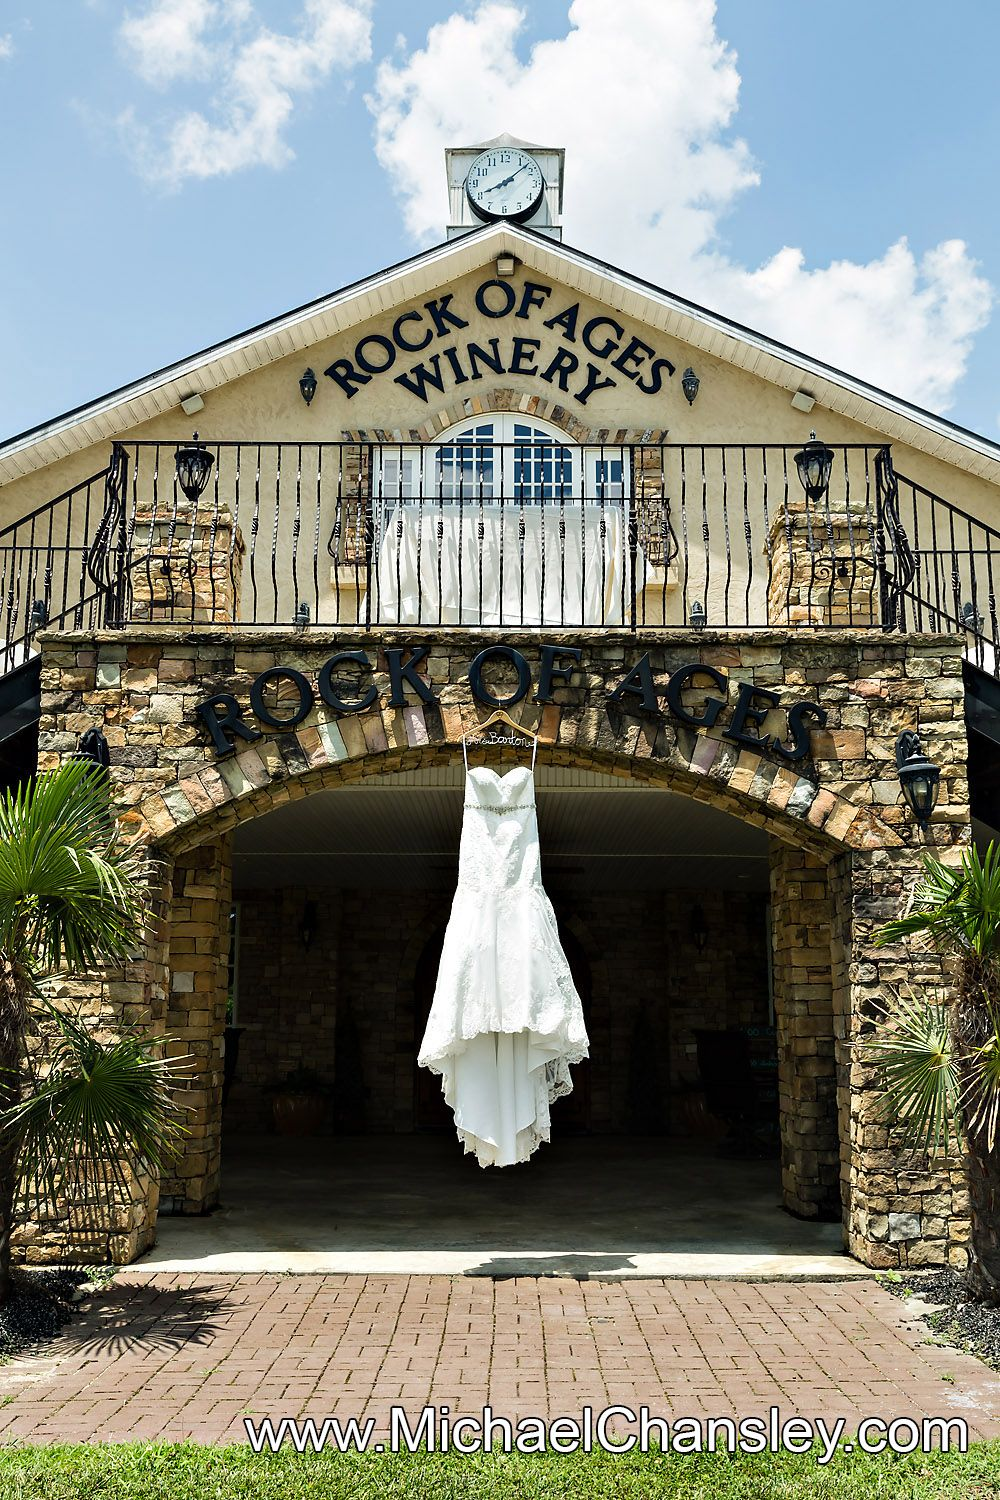 Brides dress hangs on display for a portrait photo at rock of ages